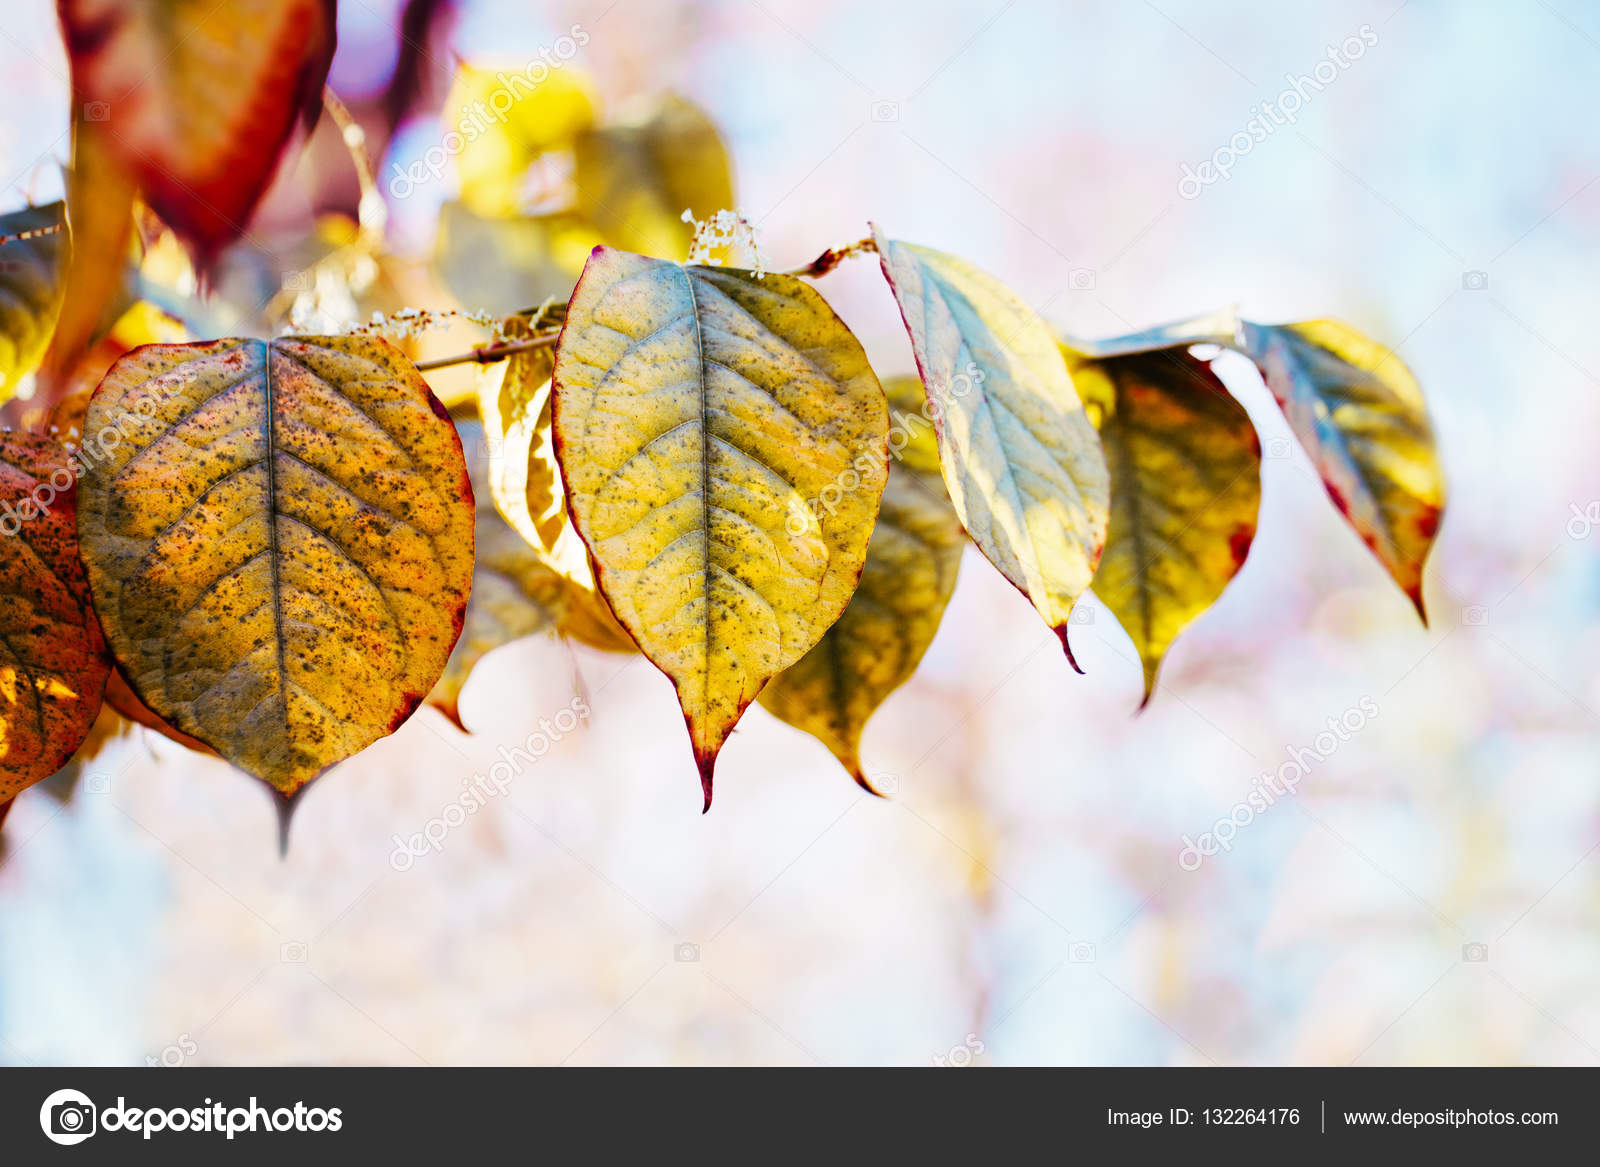 Beautiful Close Up Image Shot With Colorful Yellow Red Autumn Fall Leaves On Tree Branches Fall Season Card Wallpaper Textured Background Copyspace For Text Stock Photo C Anoushkatoronto 132264176